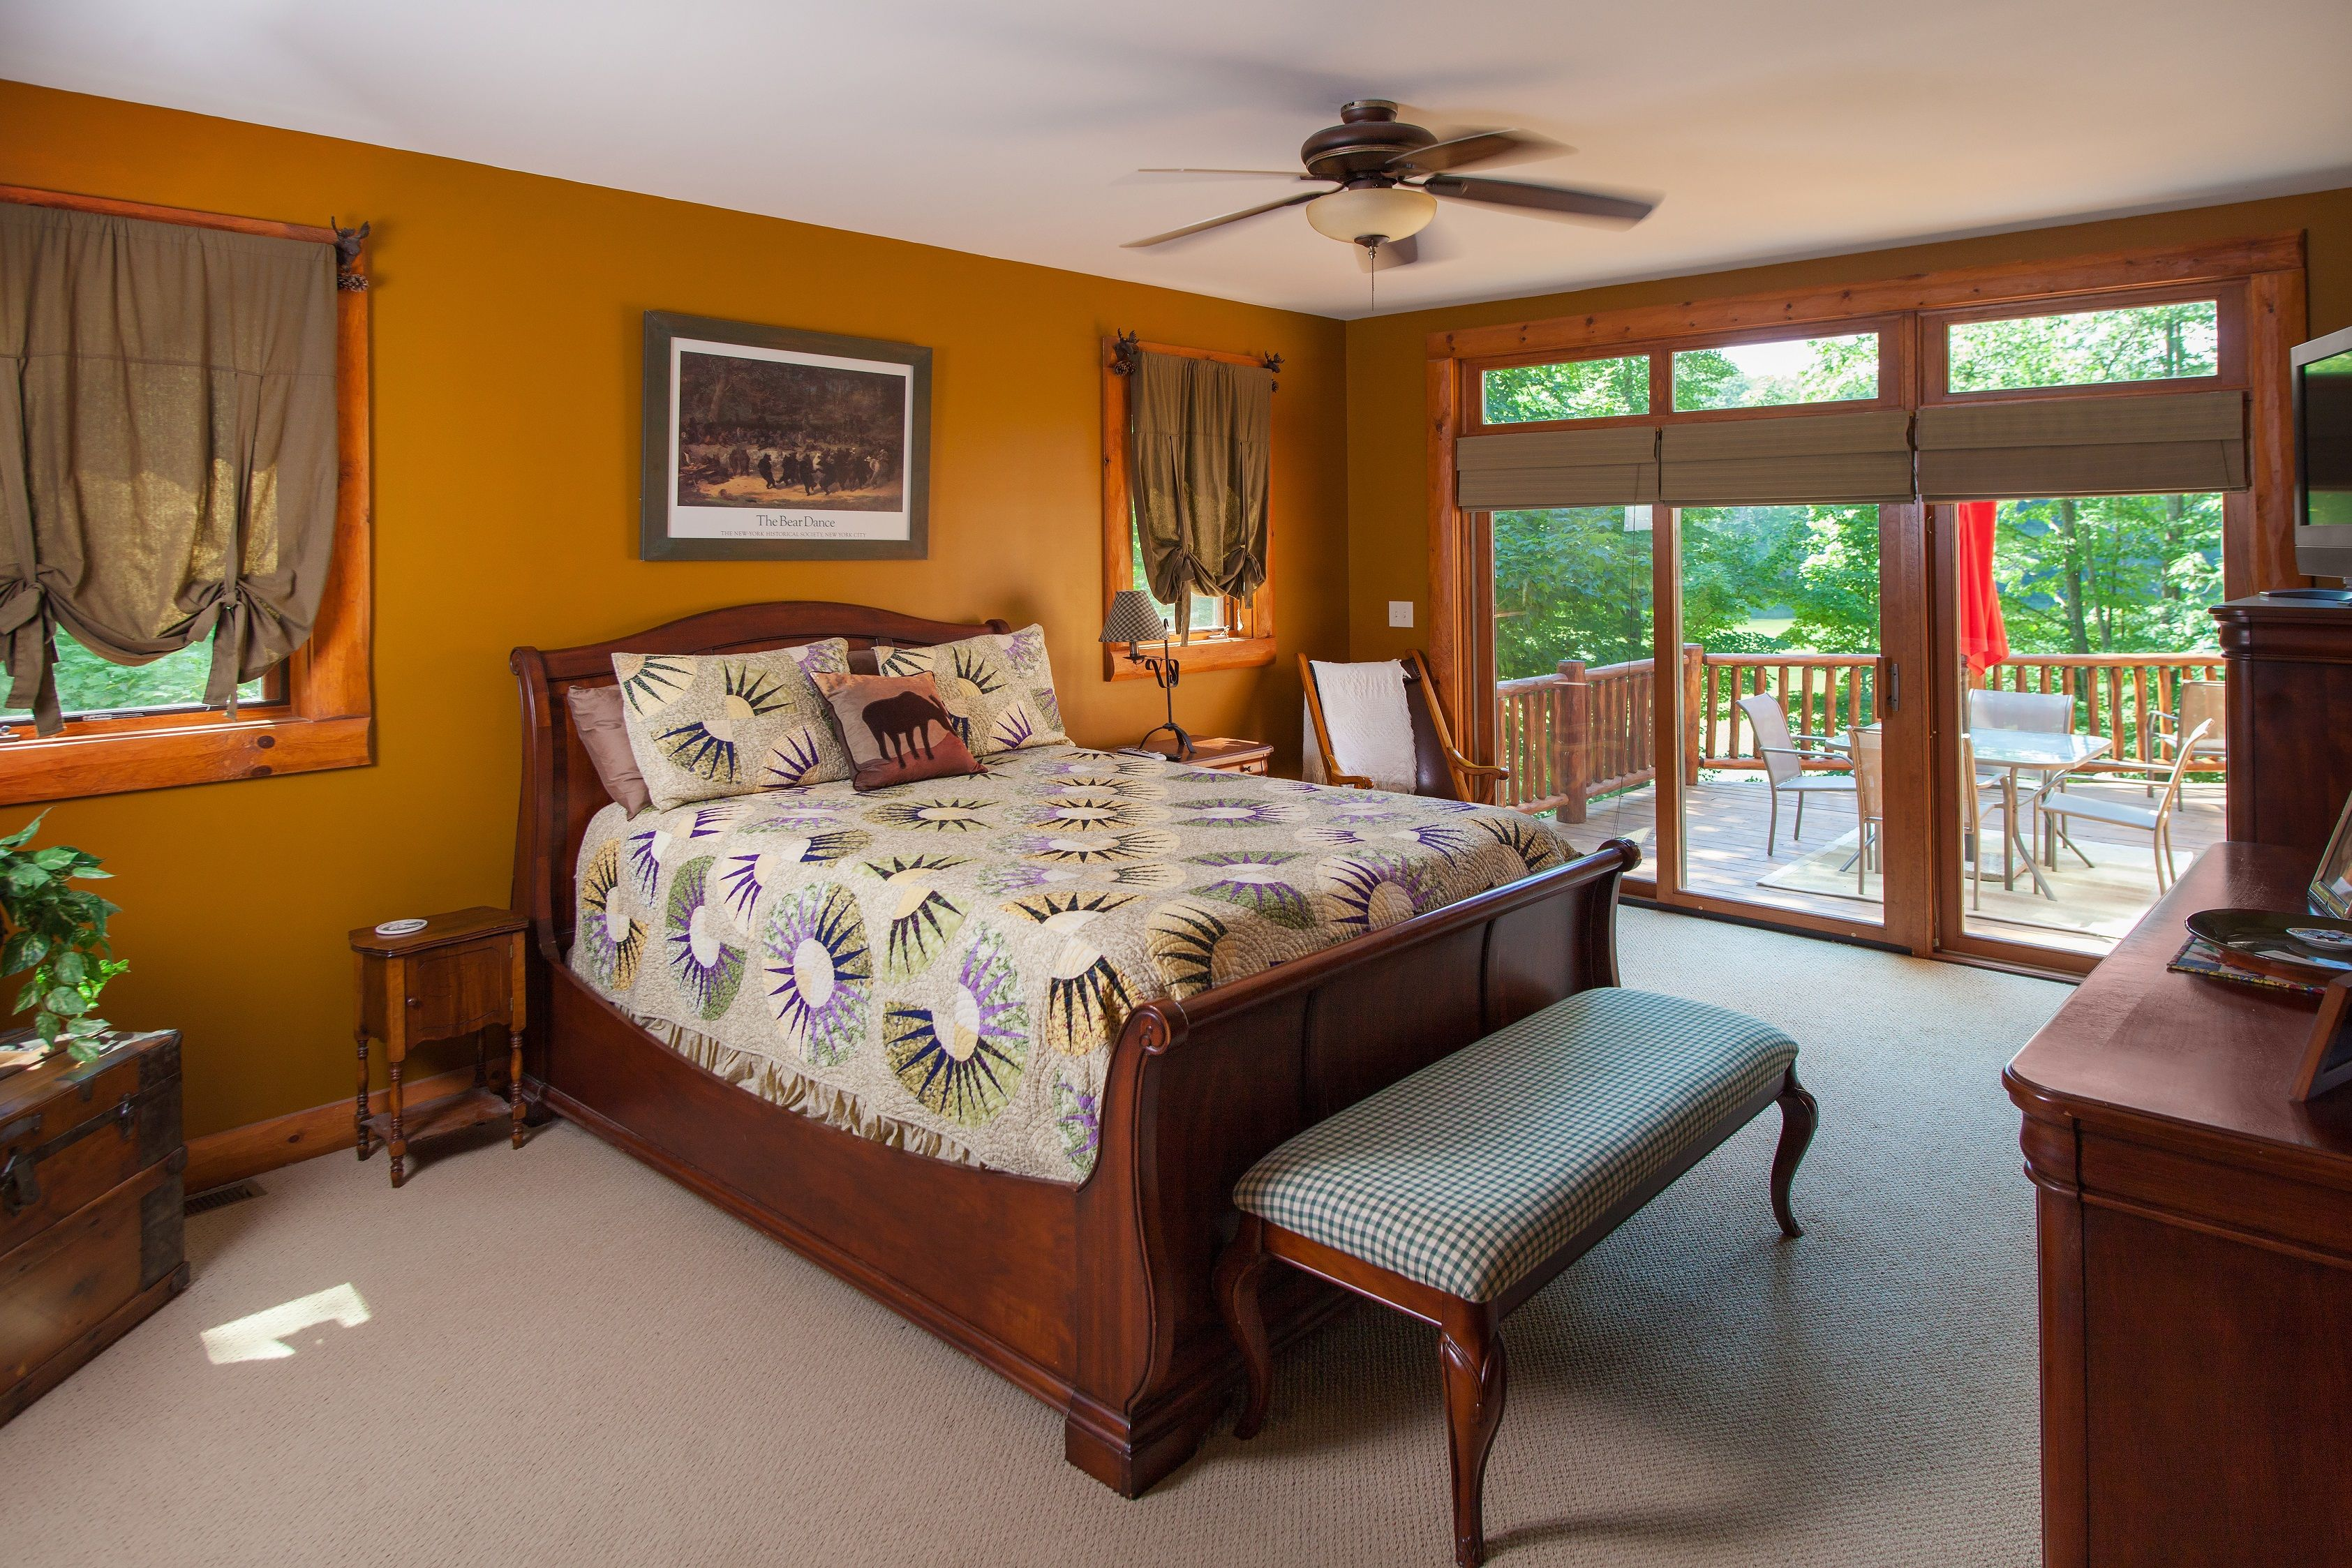 Master Bedroom has a 9' ceiling and a patio door with